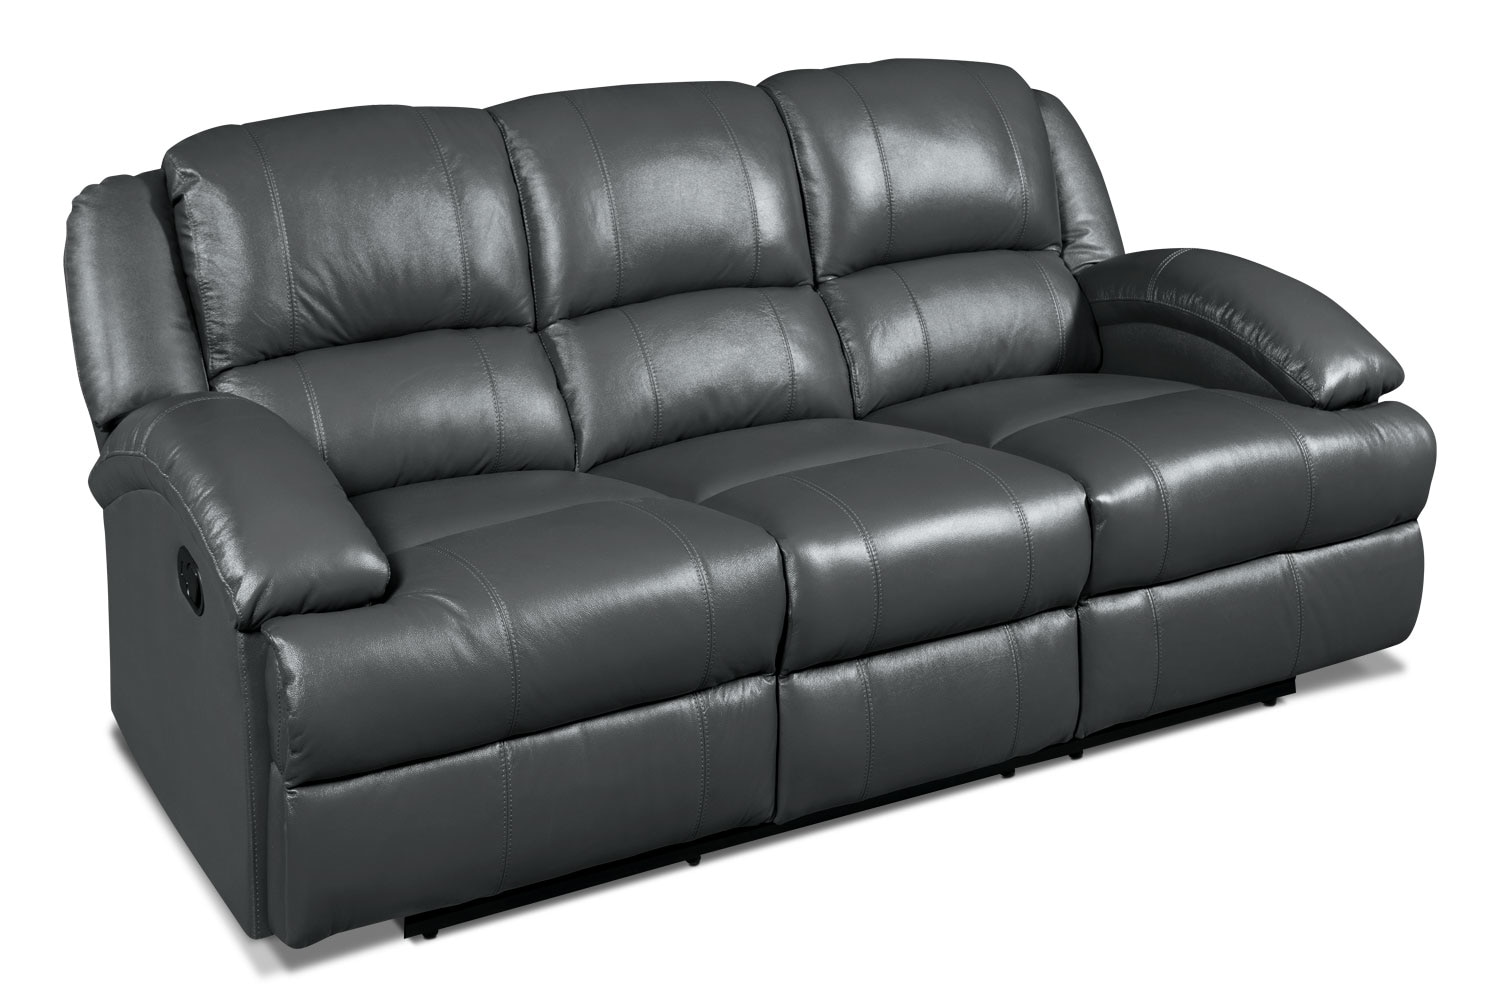 Luka genuine leather power reclining sofa grey united for Real leather sofas